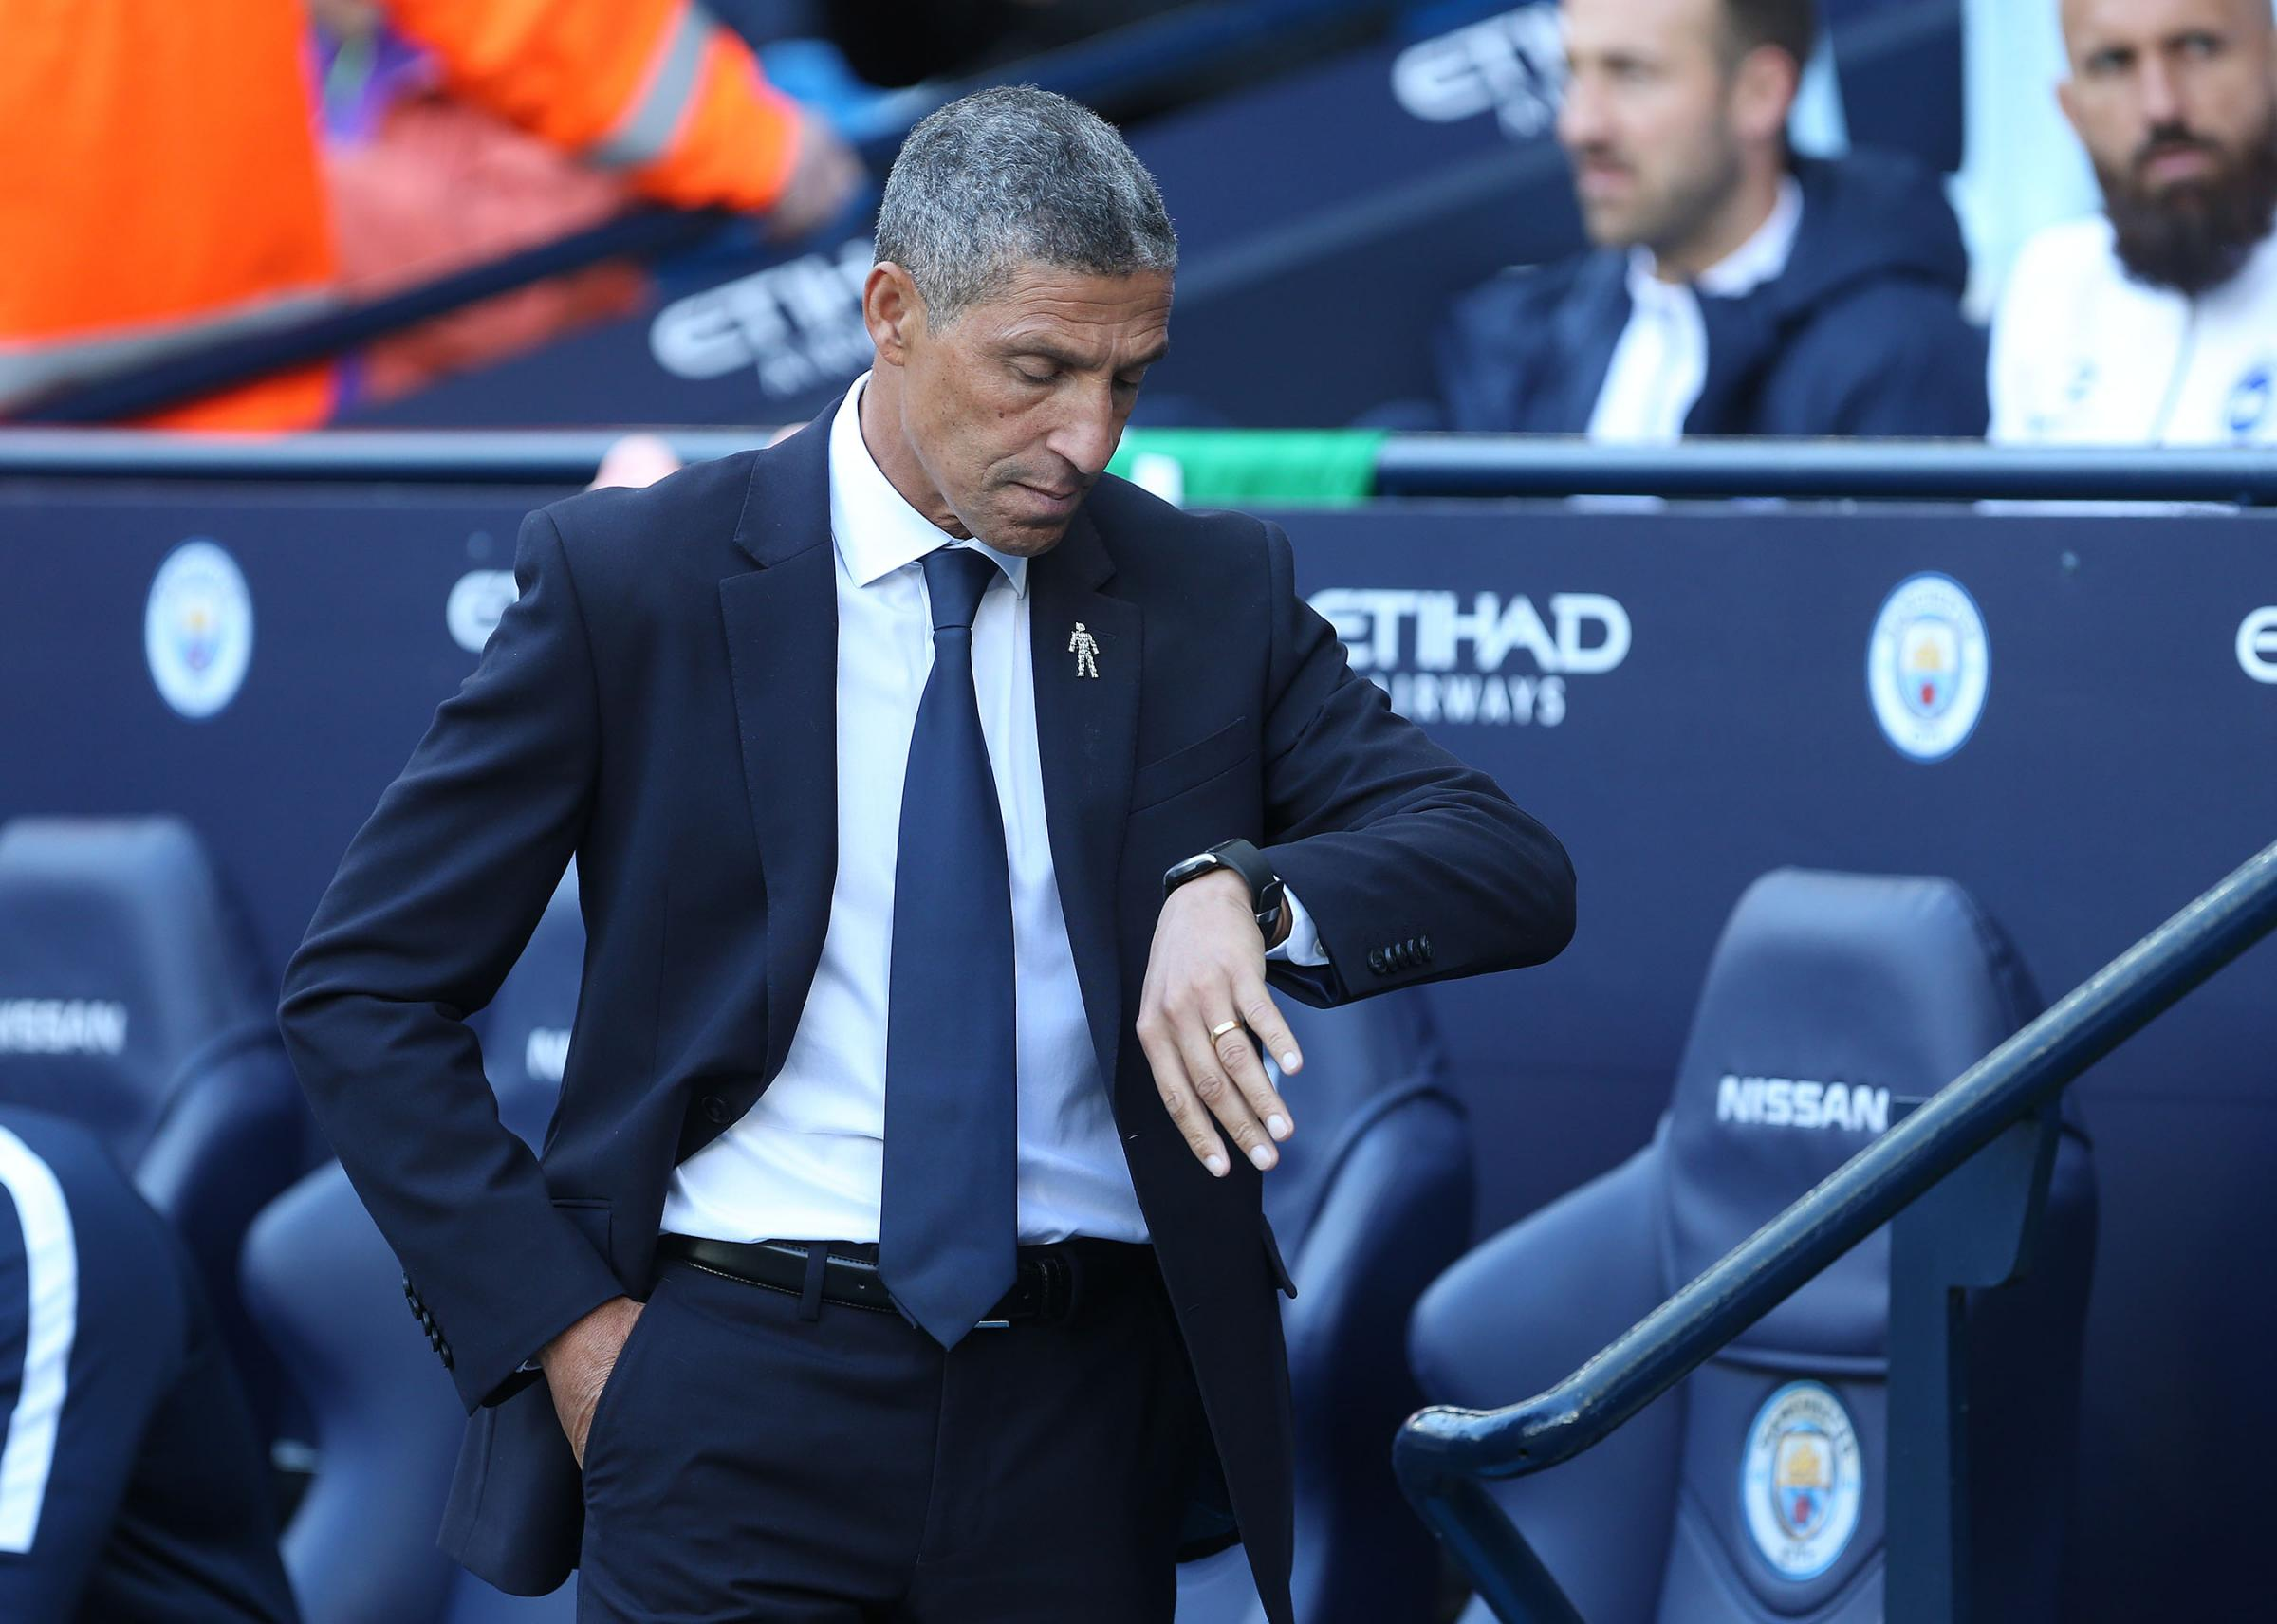 Albion Analysis: Bloom has gambled big in sacking Hughton